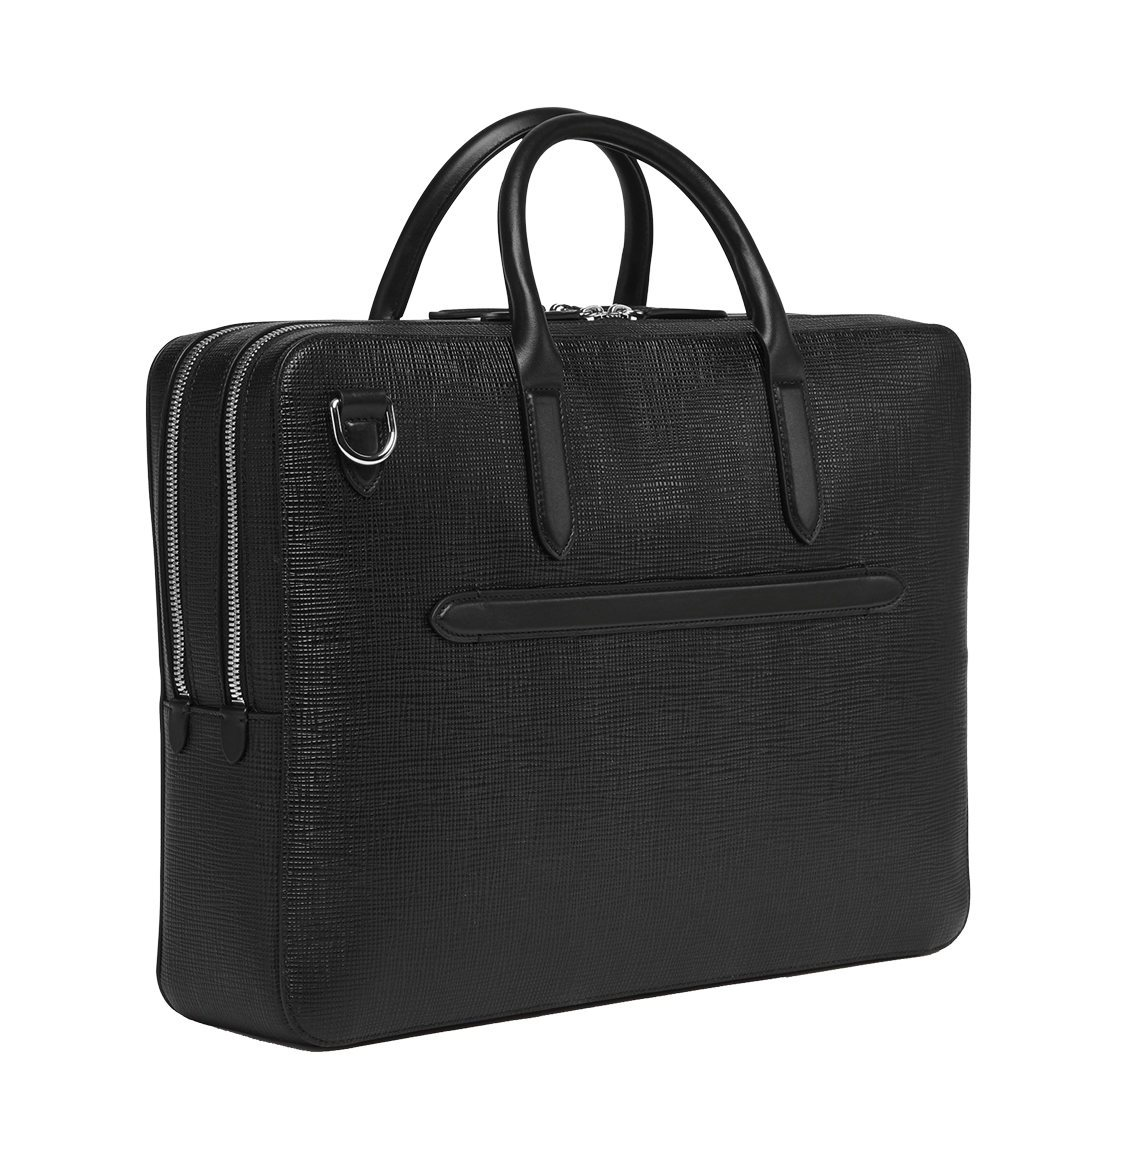 Smythson Panama Large Briefcase Black